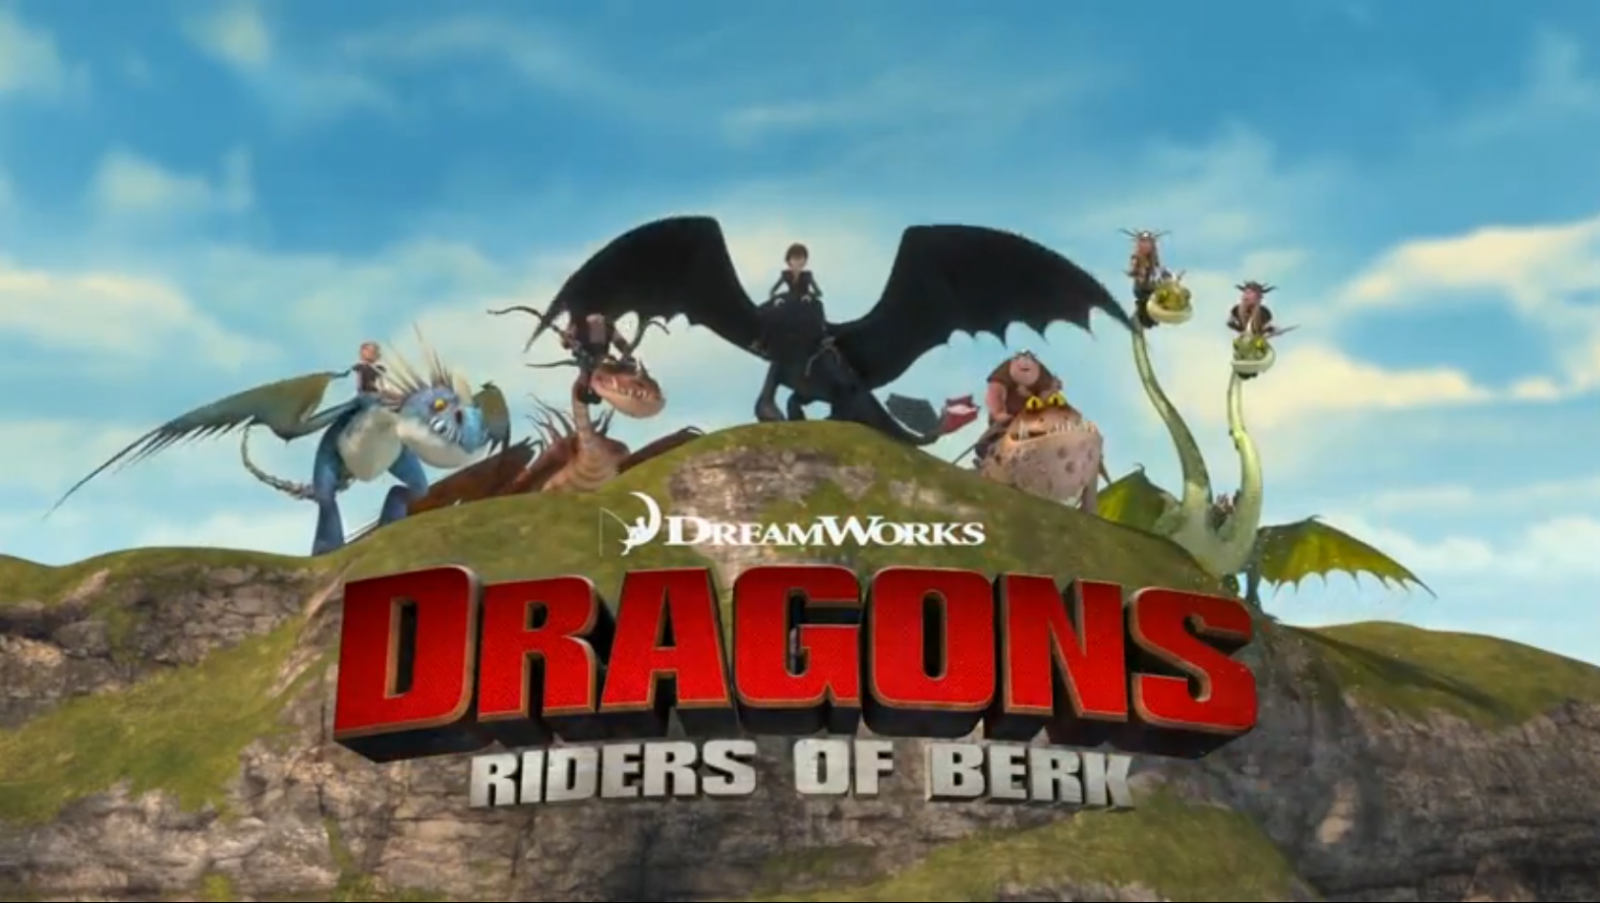 Httyd tv series how to train your dragon dragons riders of berk is a tv series based on the movie how to train your dragon it first aired on cartoon network on august 7 2012 as a one hour ccuart Choice Image